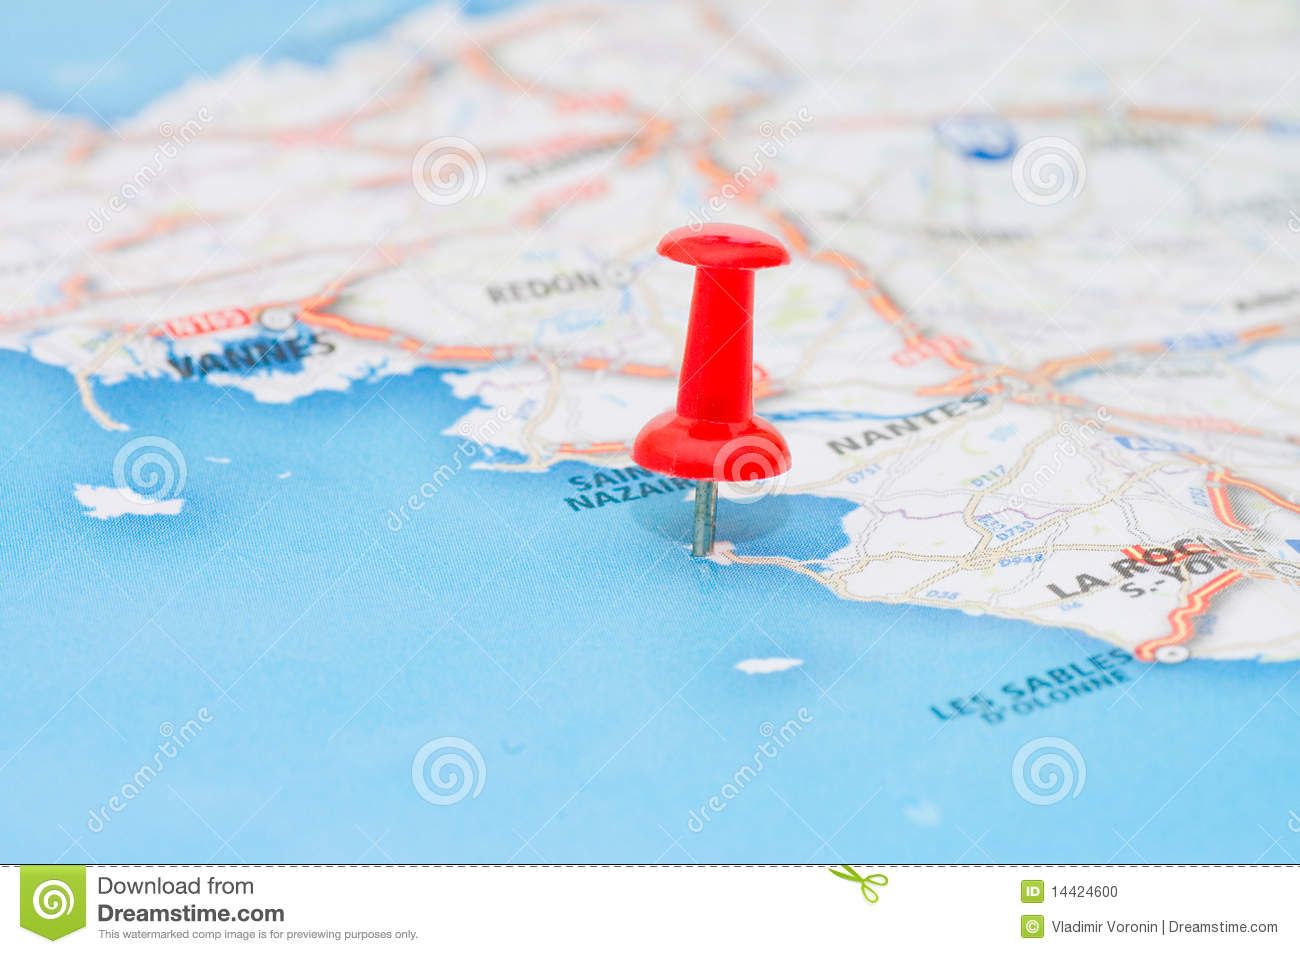 Red Pushpin Marking A Location Stock Photo - Image of city, lost: 14424600